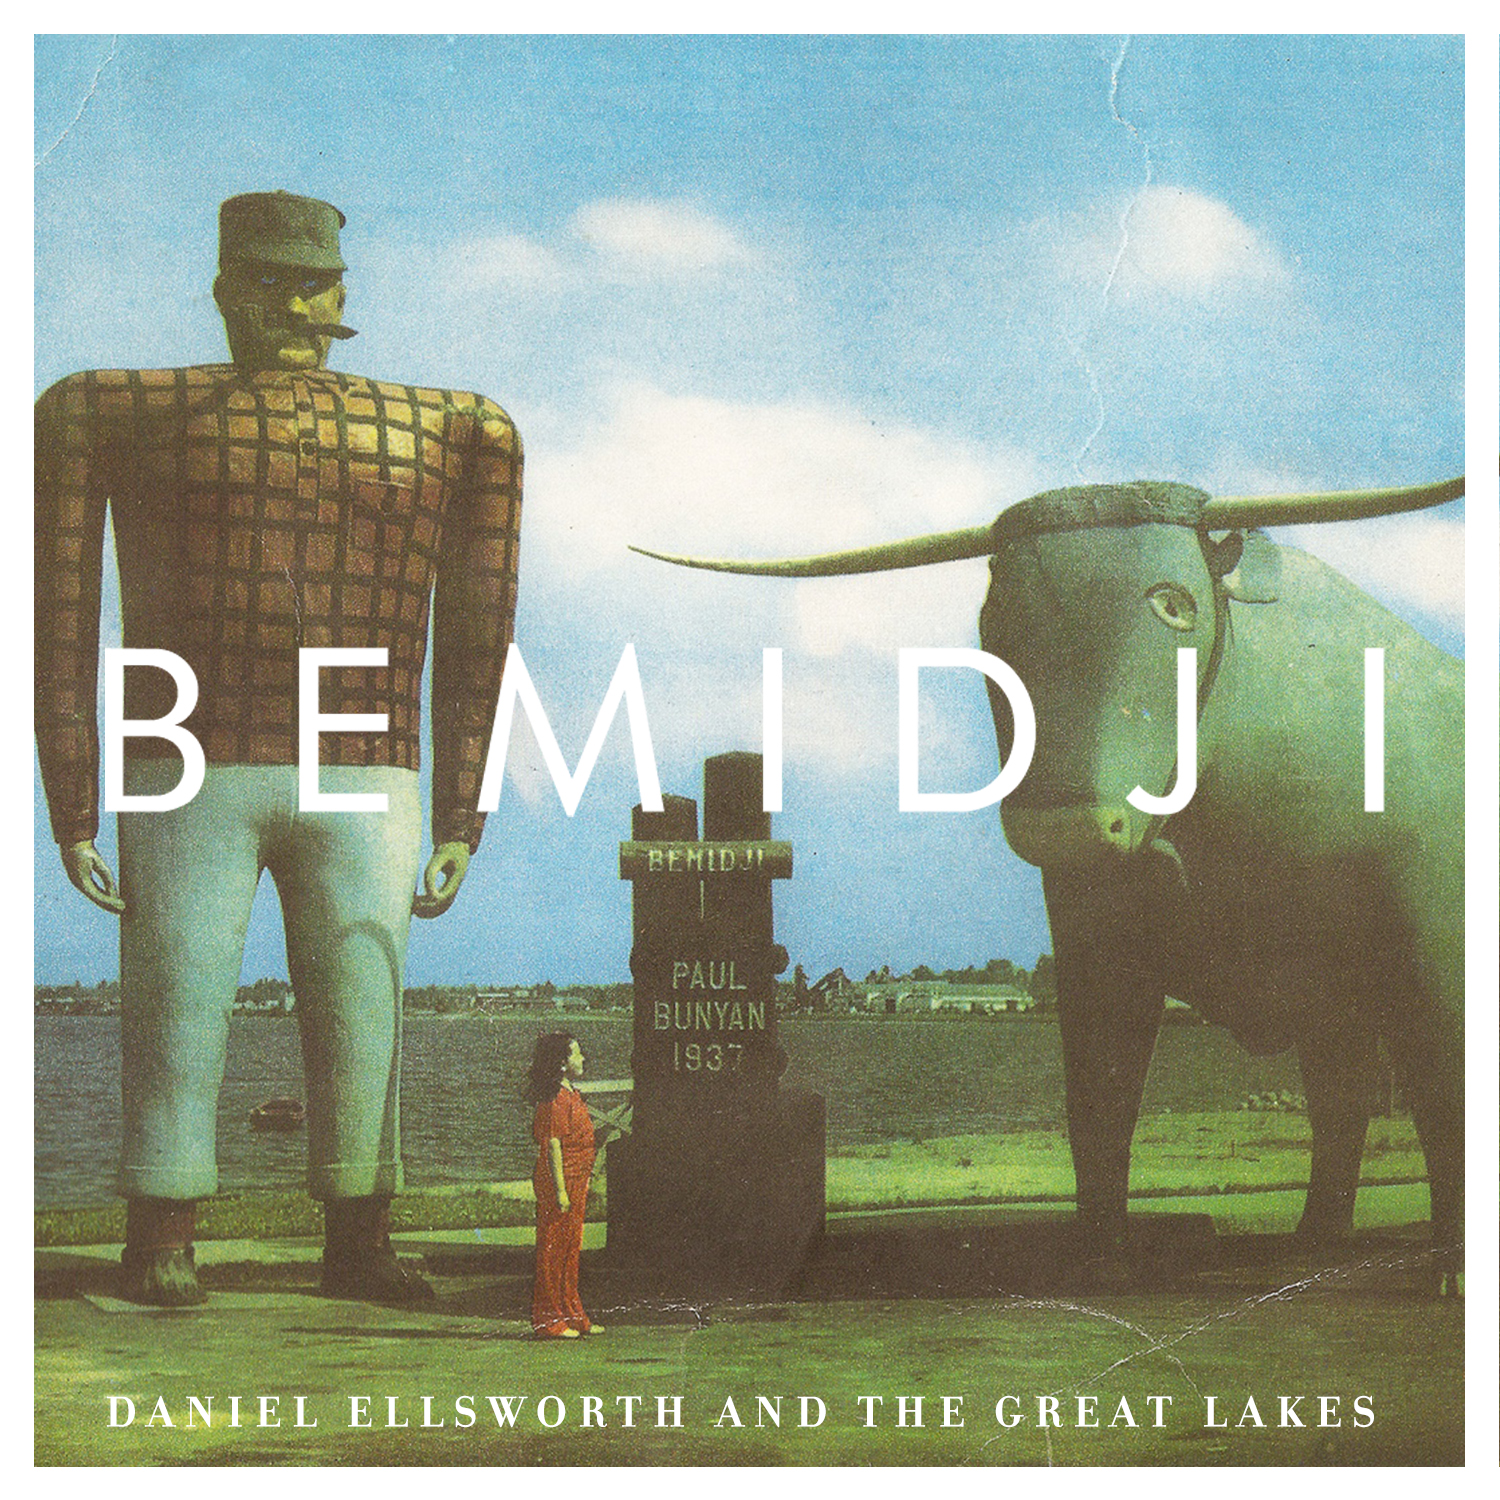 bemidji full res cover.jpg